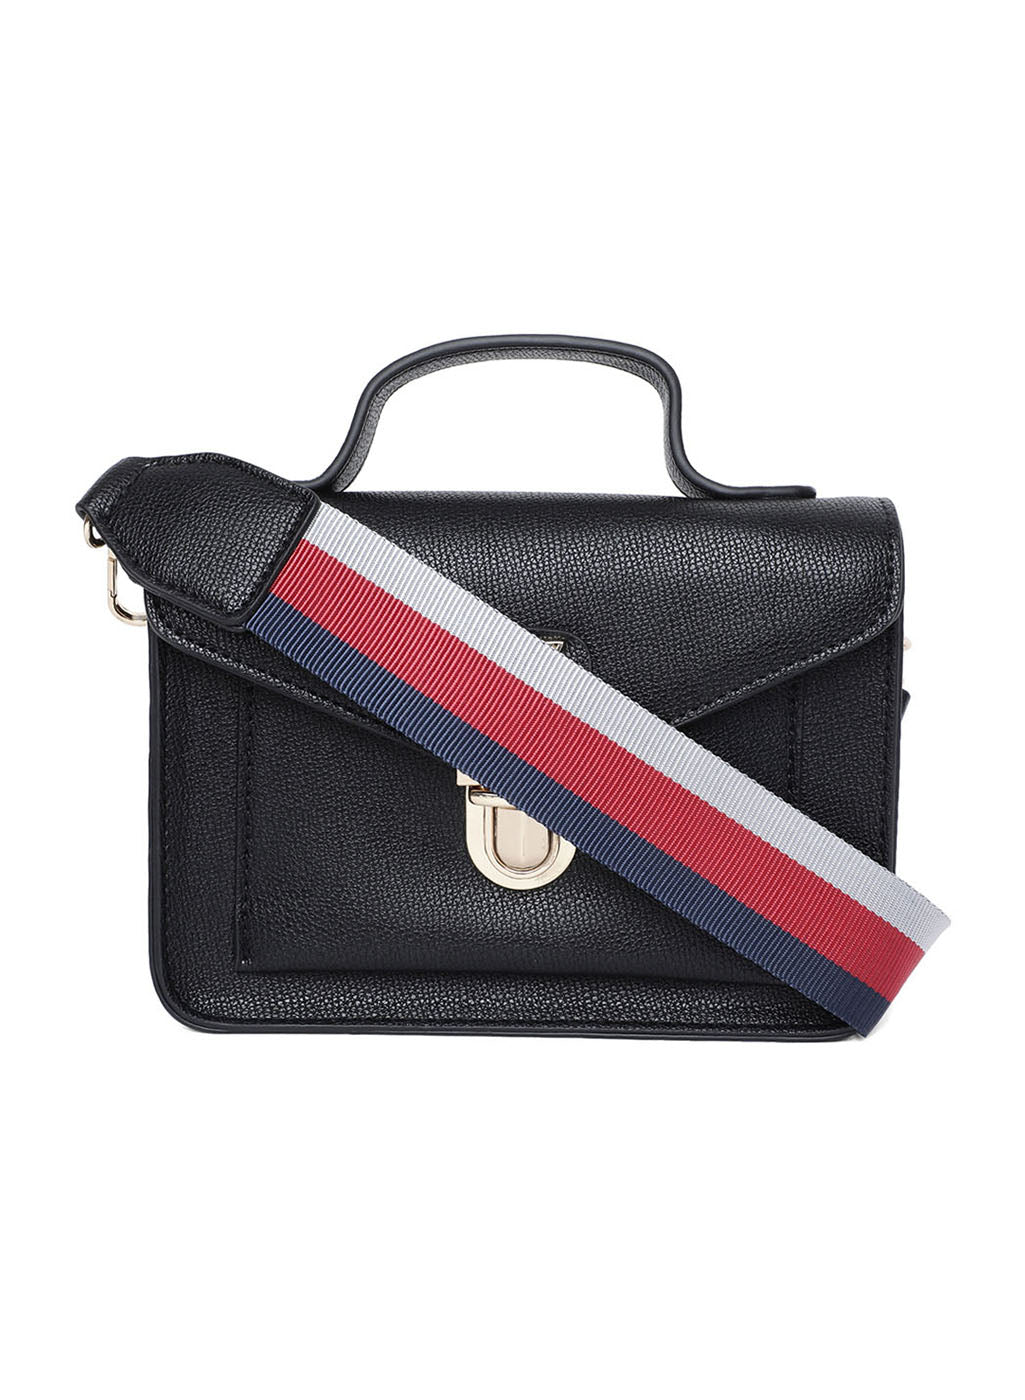 Sling Bag With Fabric Multicolored Strap